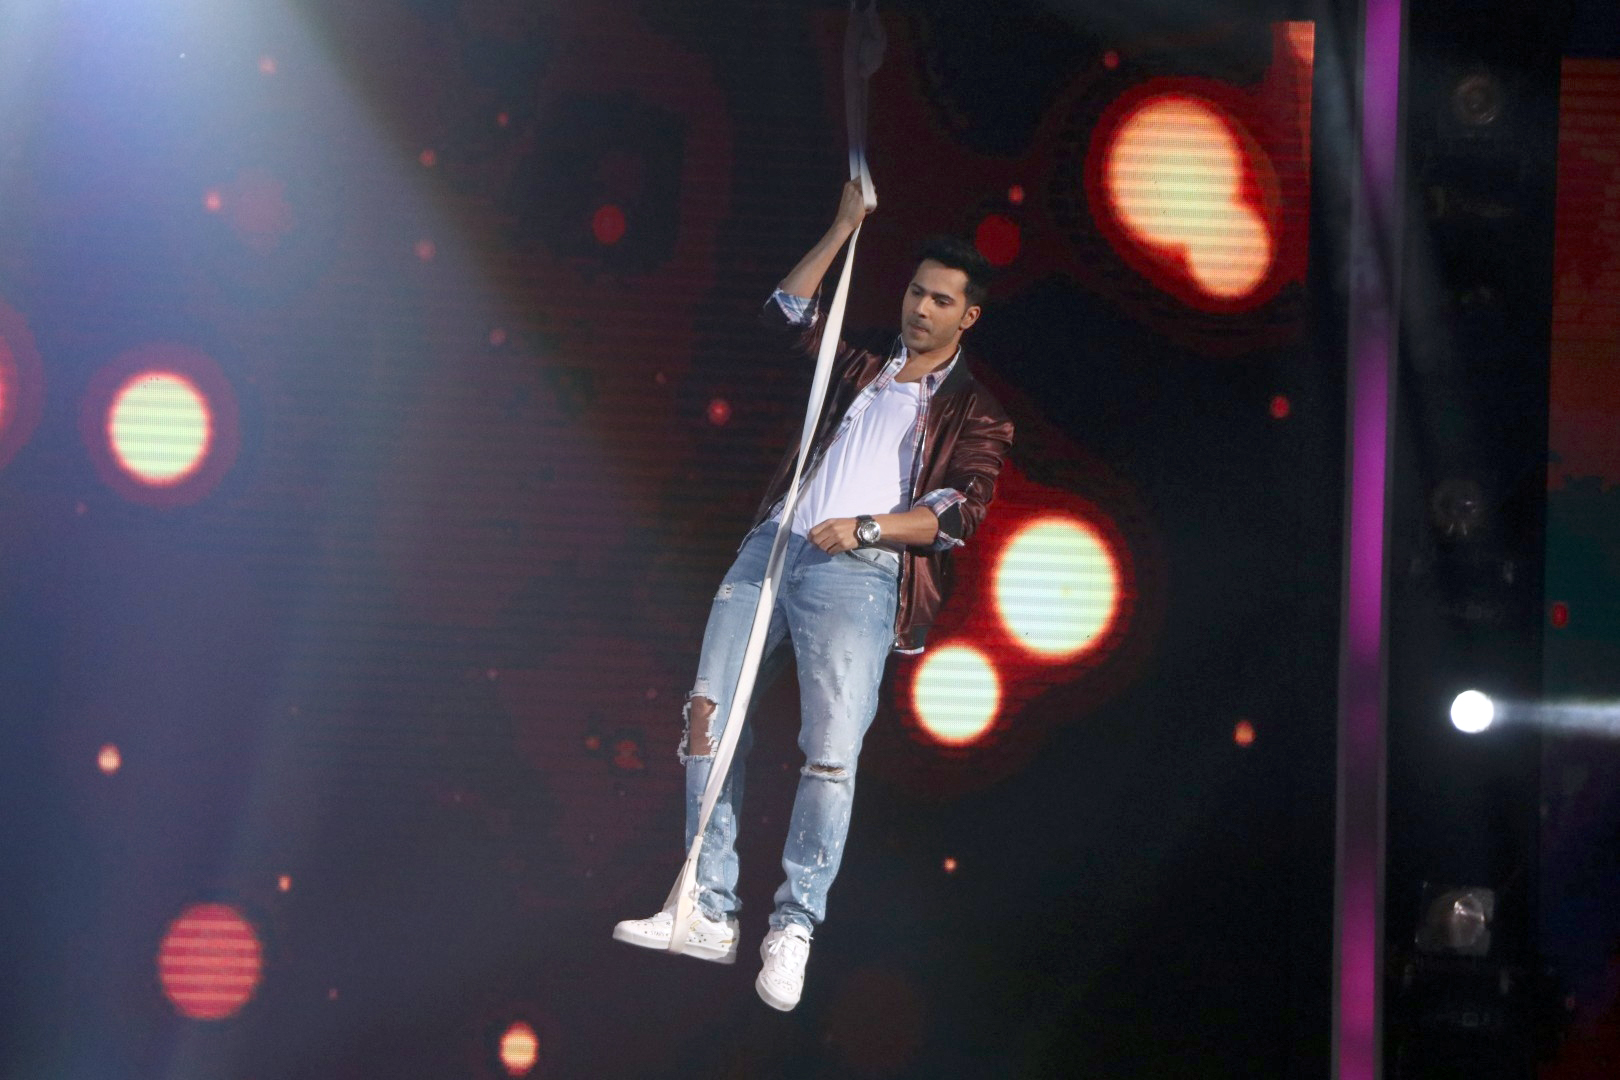 Varun Dhawan on the sets of SaReGaMaPa